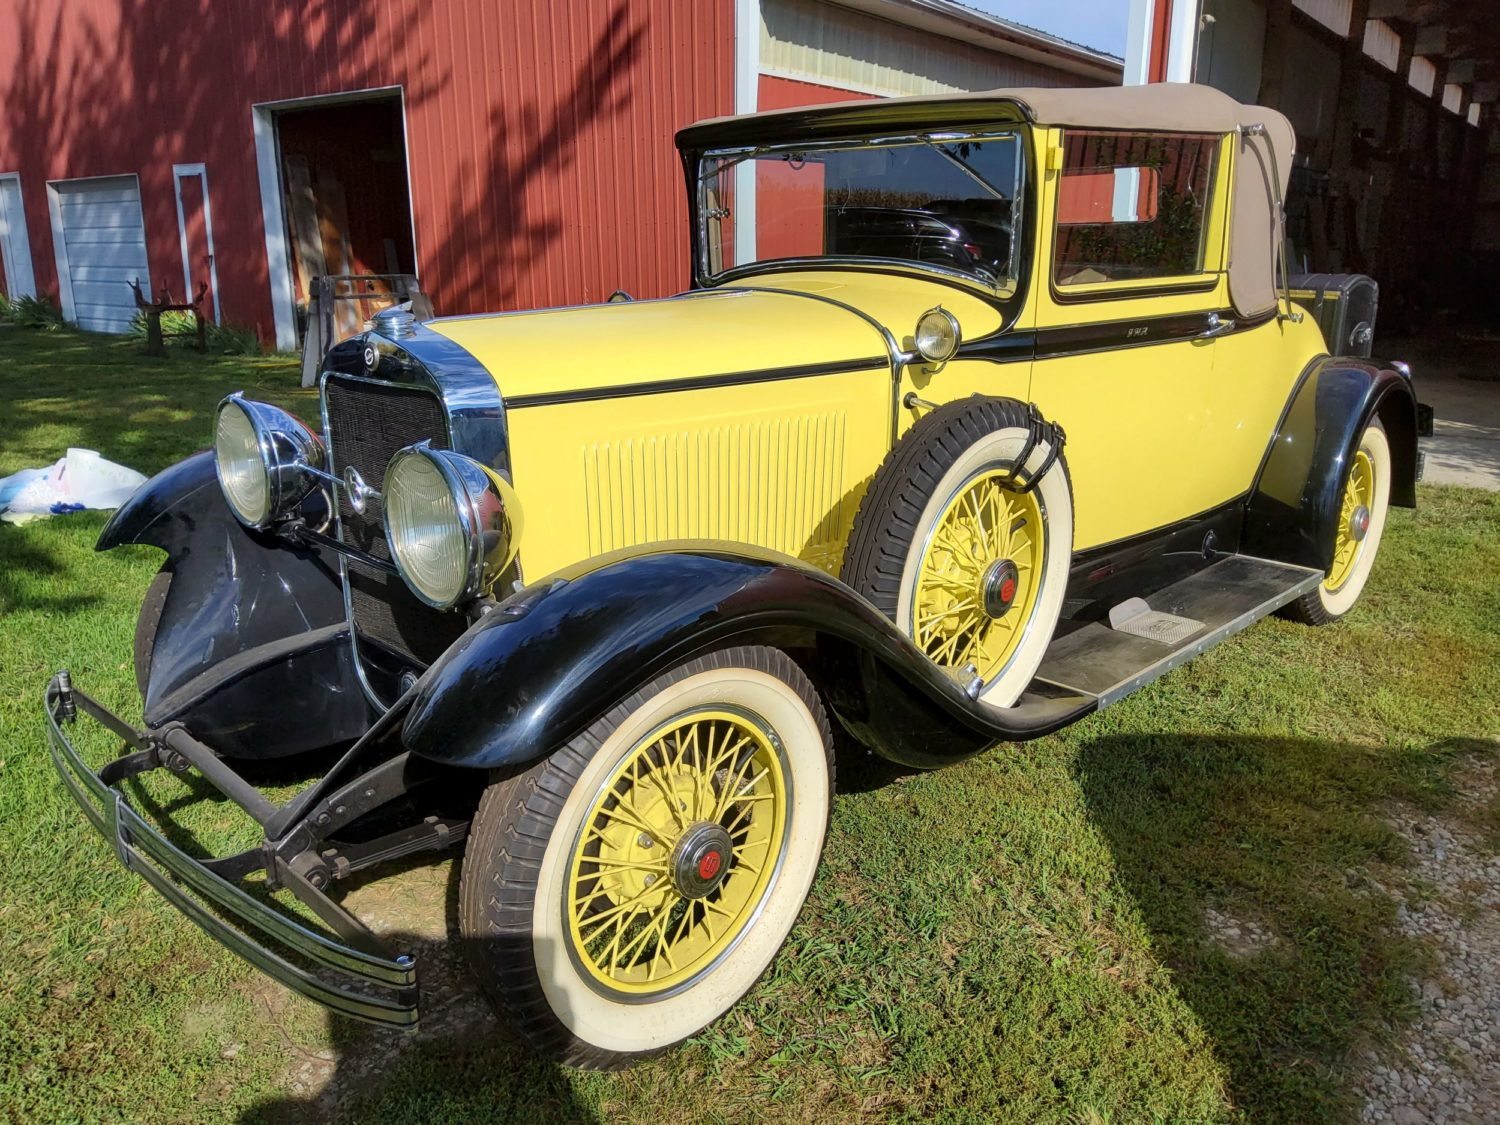 ONLINE ONLY! 1936 Cord, 1959 Cadillac & More Vintage Classic Cars! The John Agee Collection! - image 6